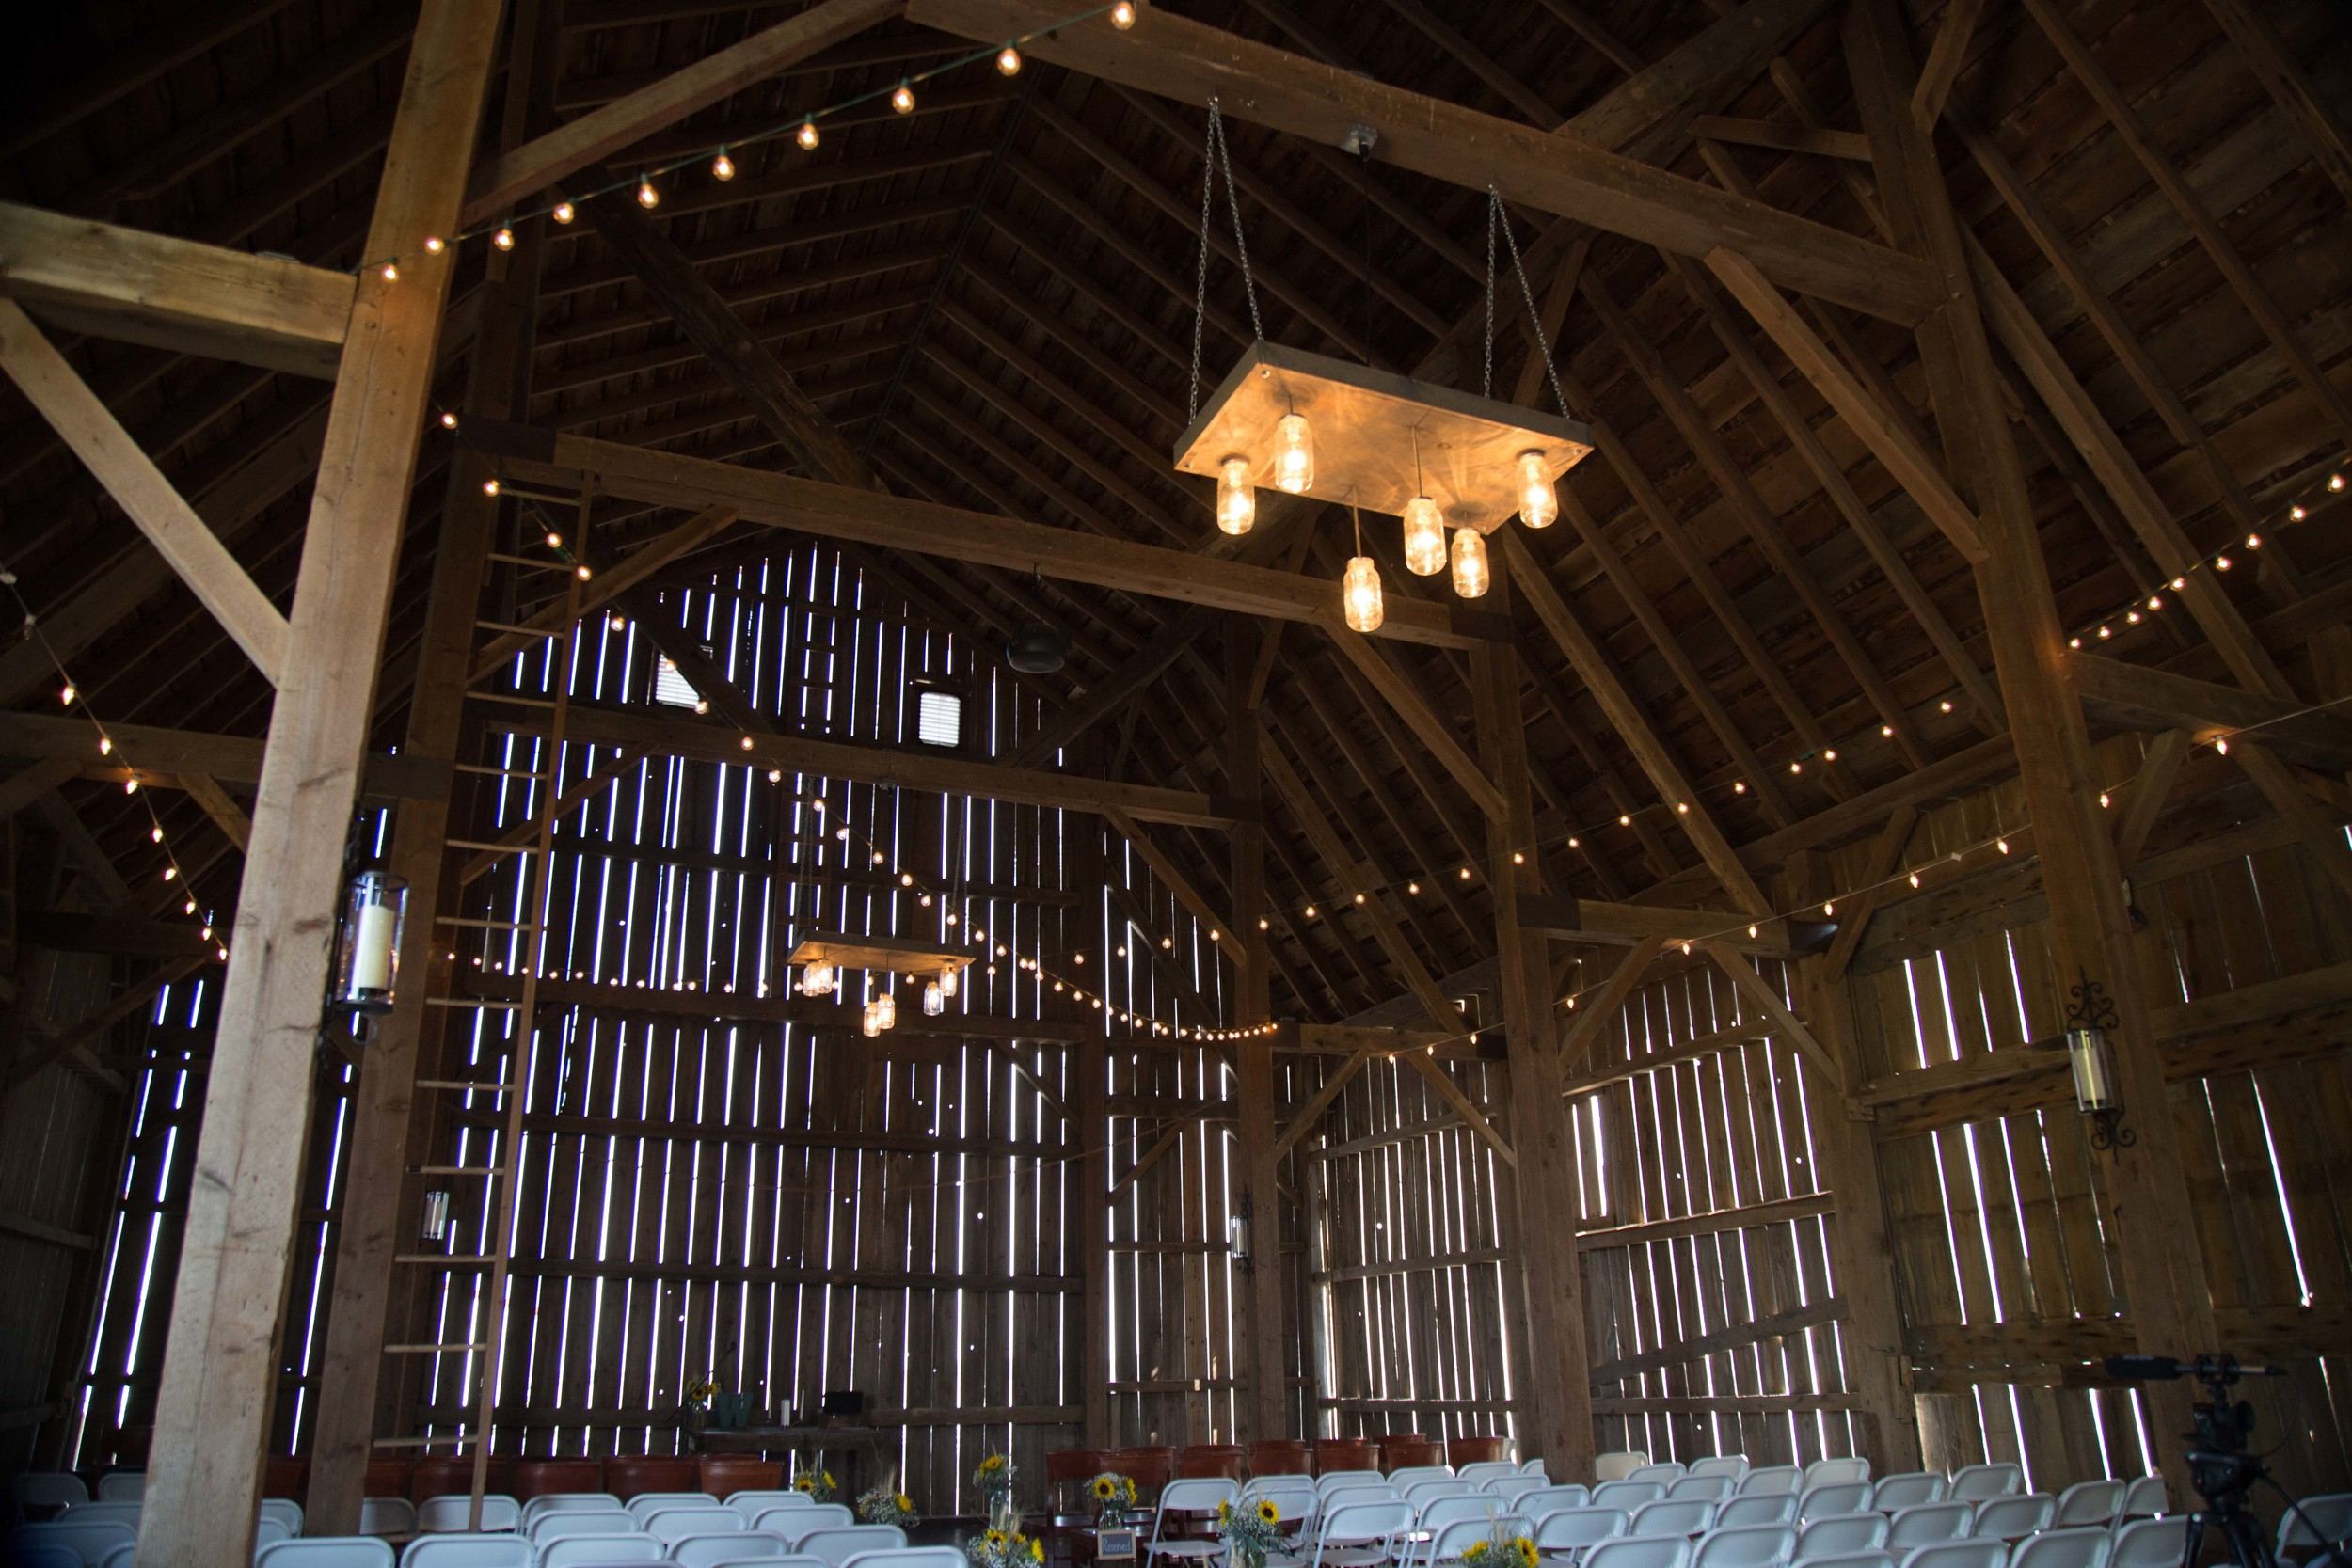 9_26-barn_Indoor_Lights_8504.jpg